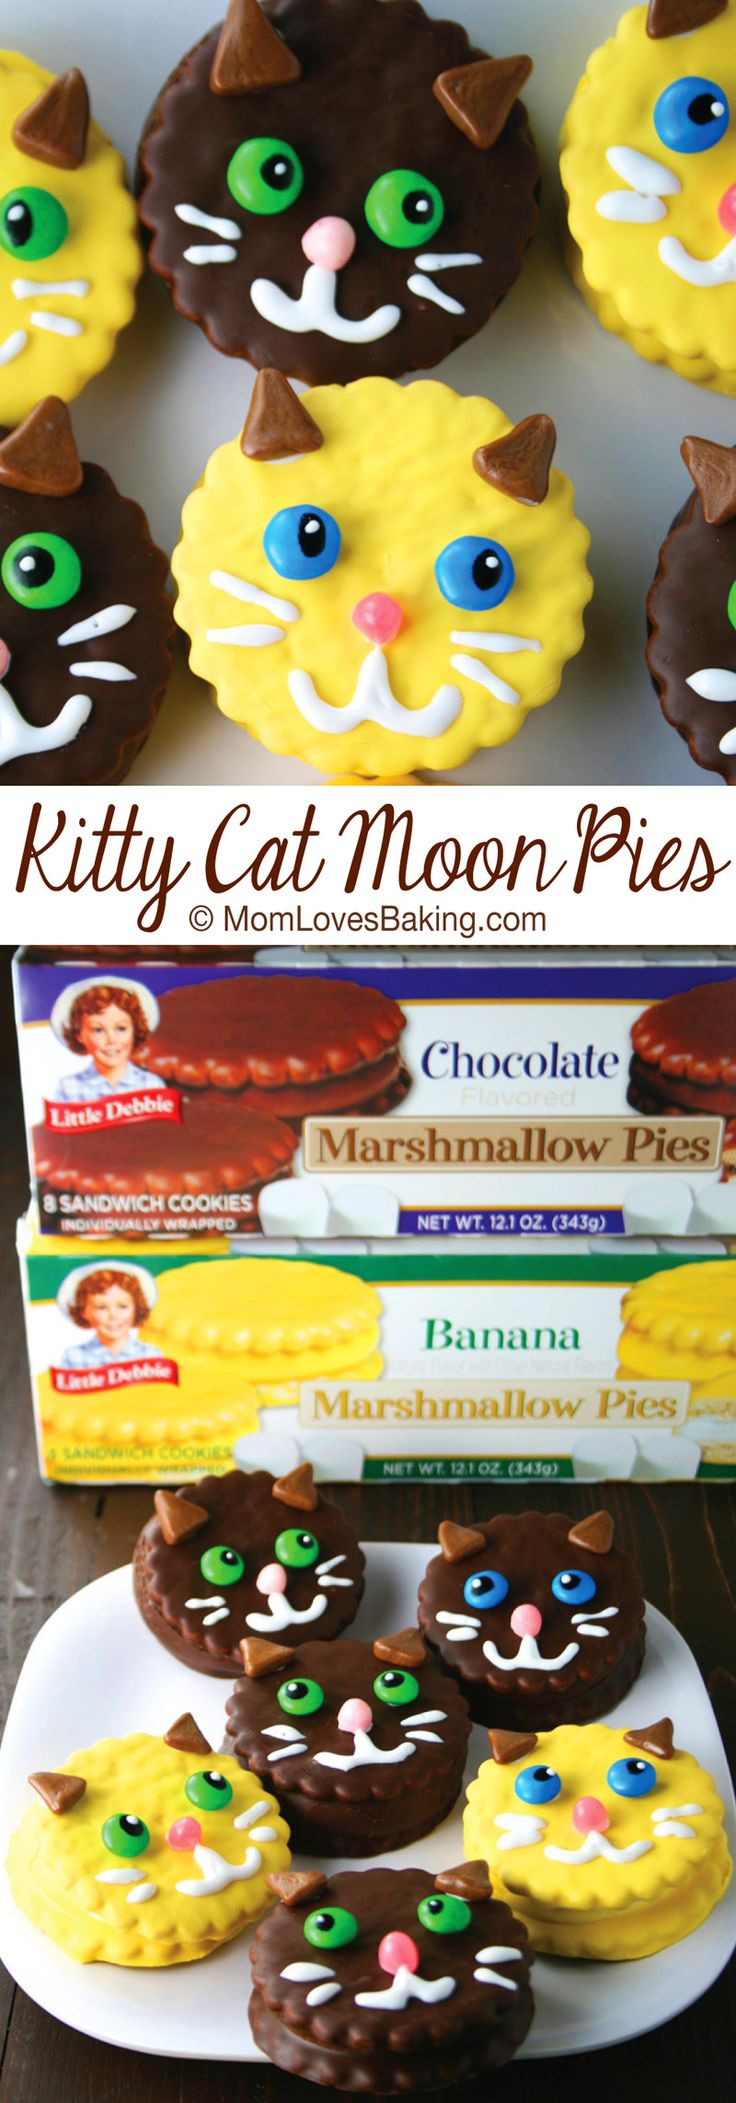 I recently entered a baking contest and guess what? I'm a runner up! Kitty Cat Moon Pies were my entry in the Food Network Dessert Creations for the Kid in All of Us sponsored by Little Debbie. Aren't they adorable!